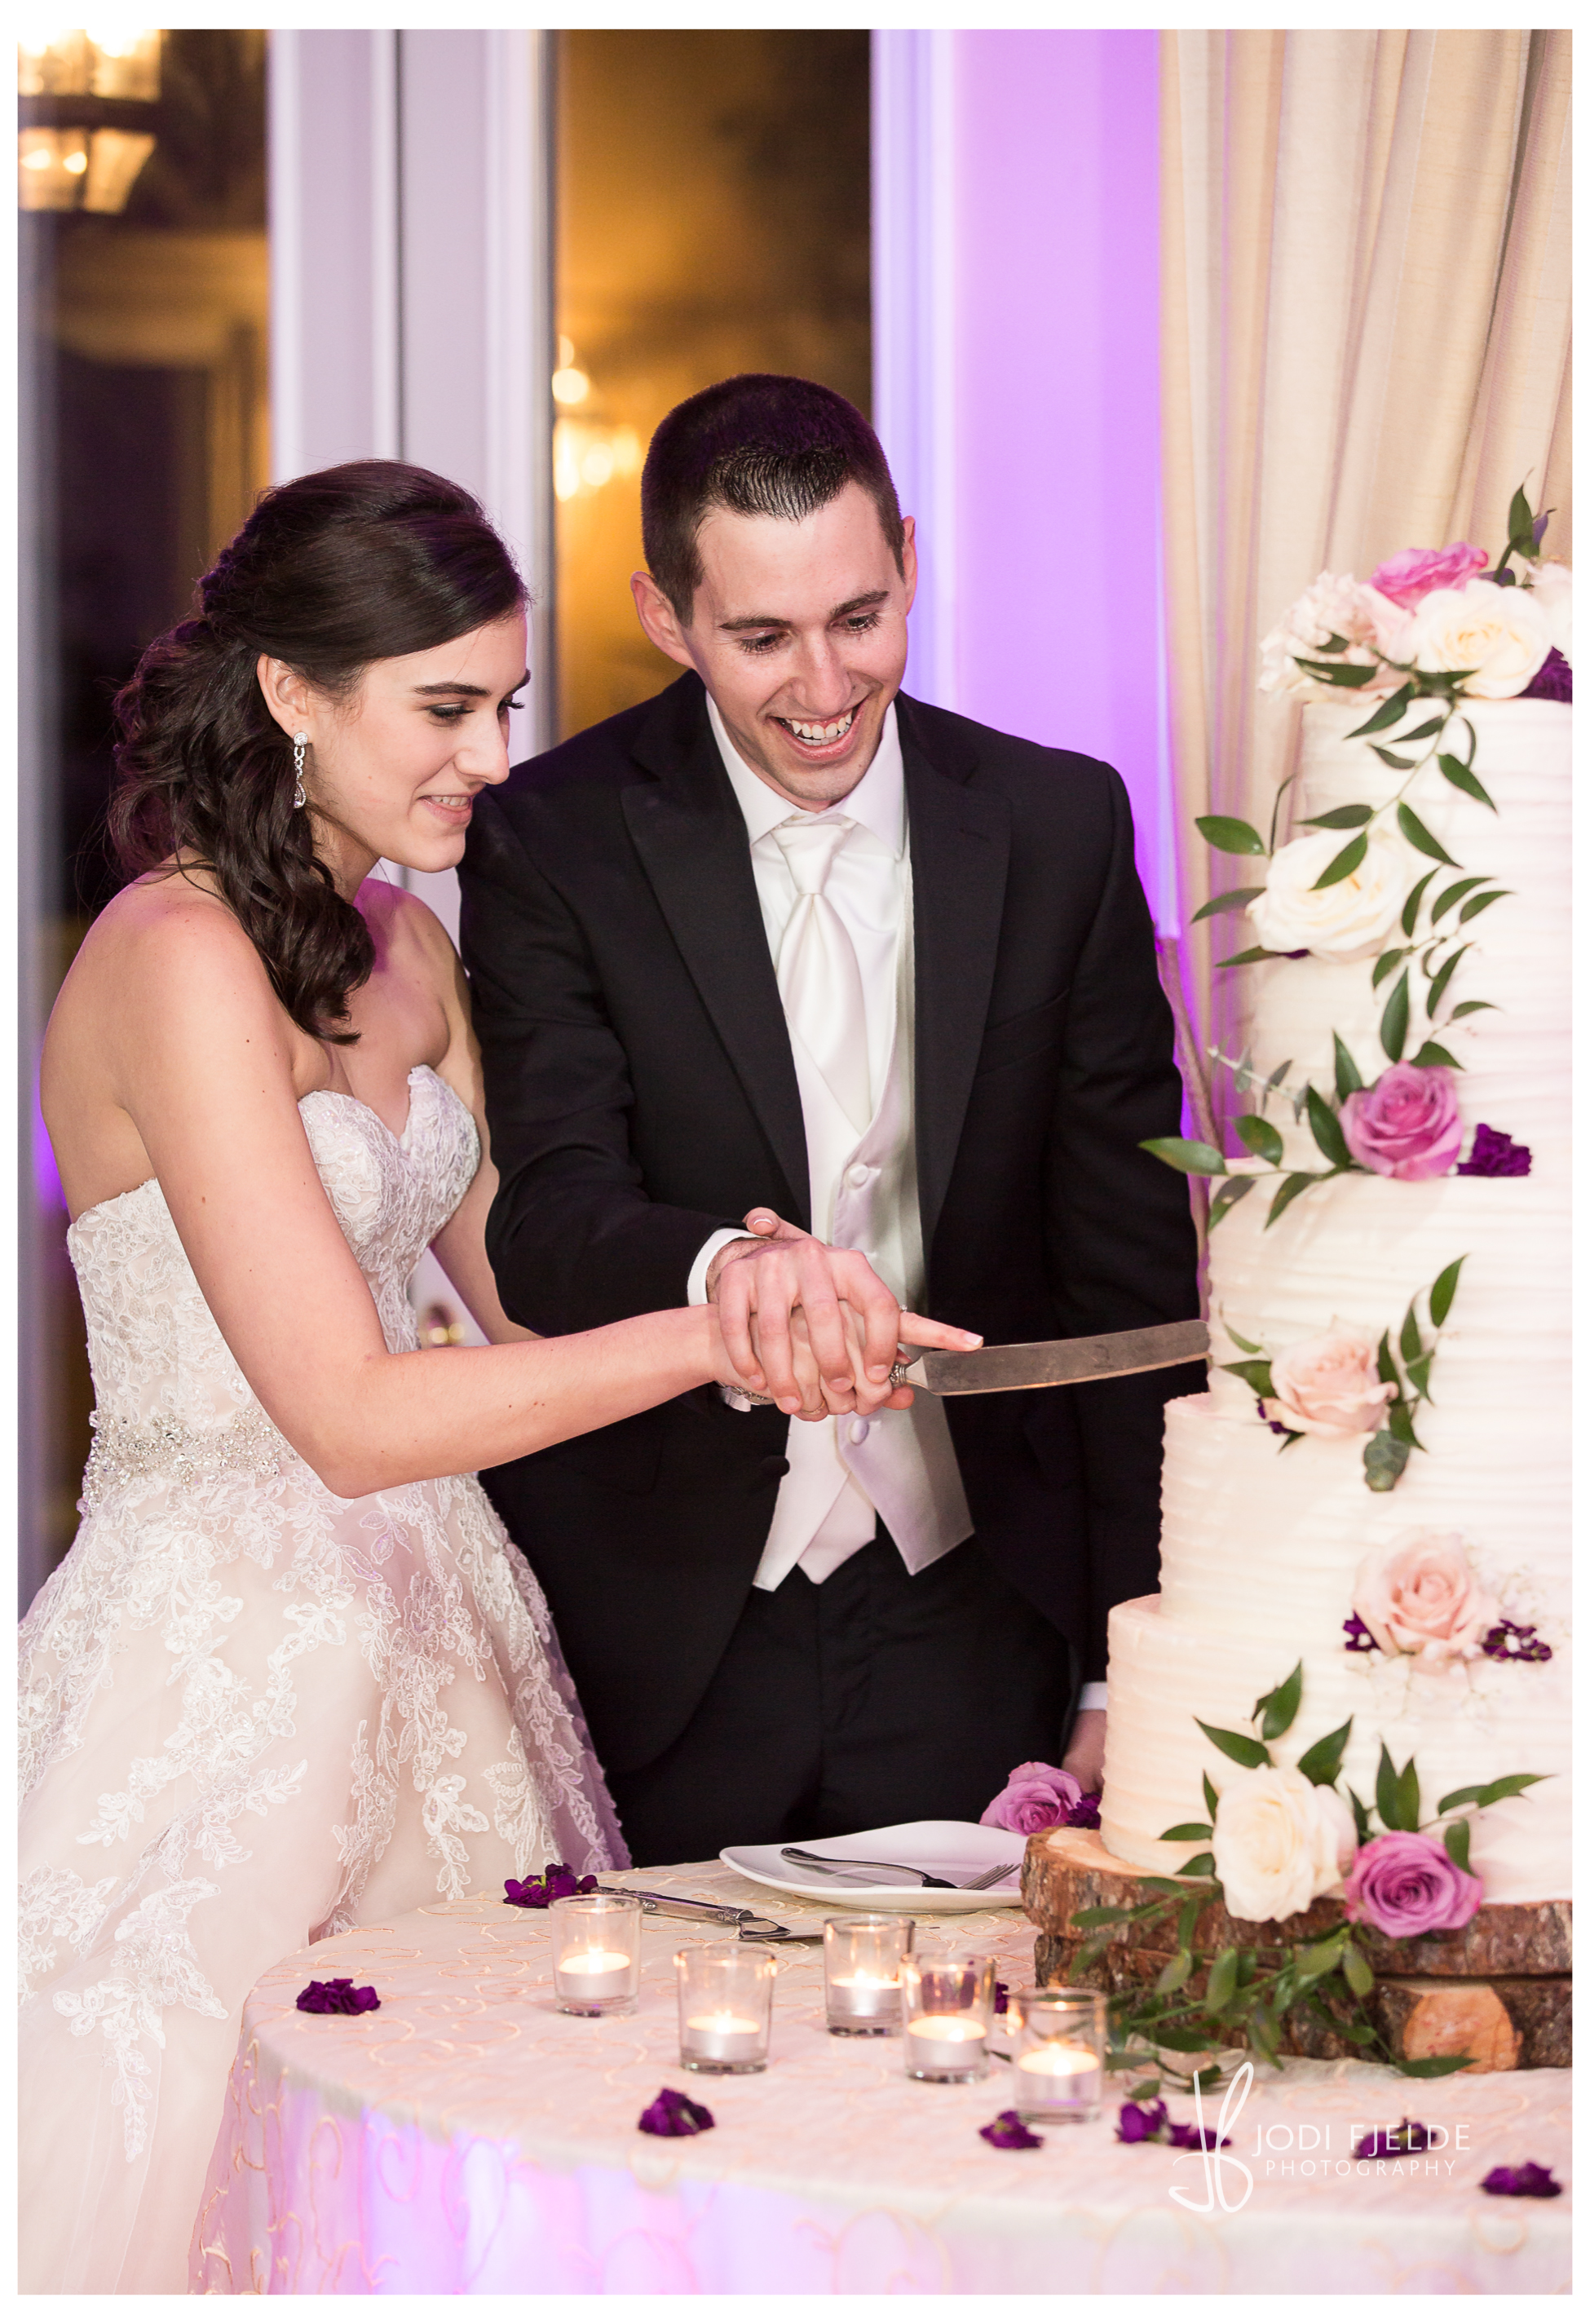 Benvenuto_Palm_Beach_Wedding_Jewish_Michelle & Jason_Jodi_Fjedle_Photography 70.jpg